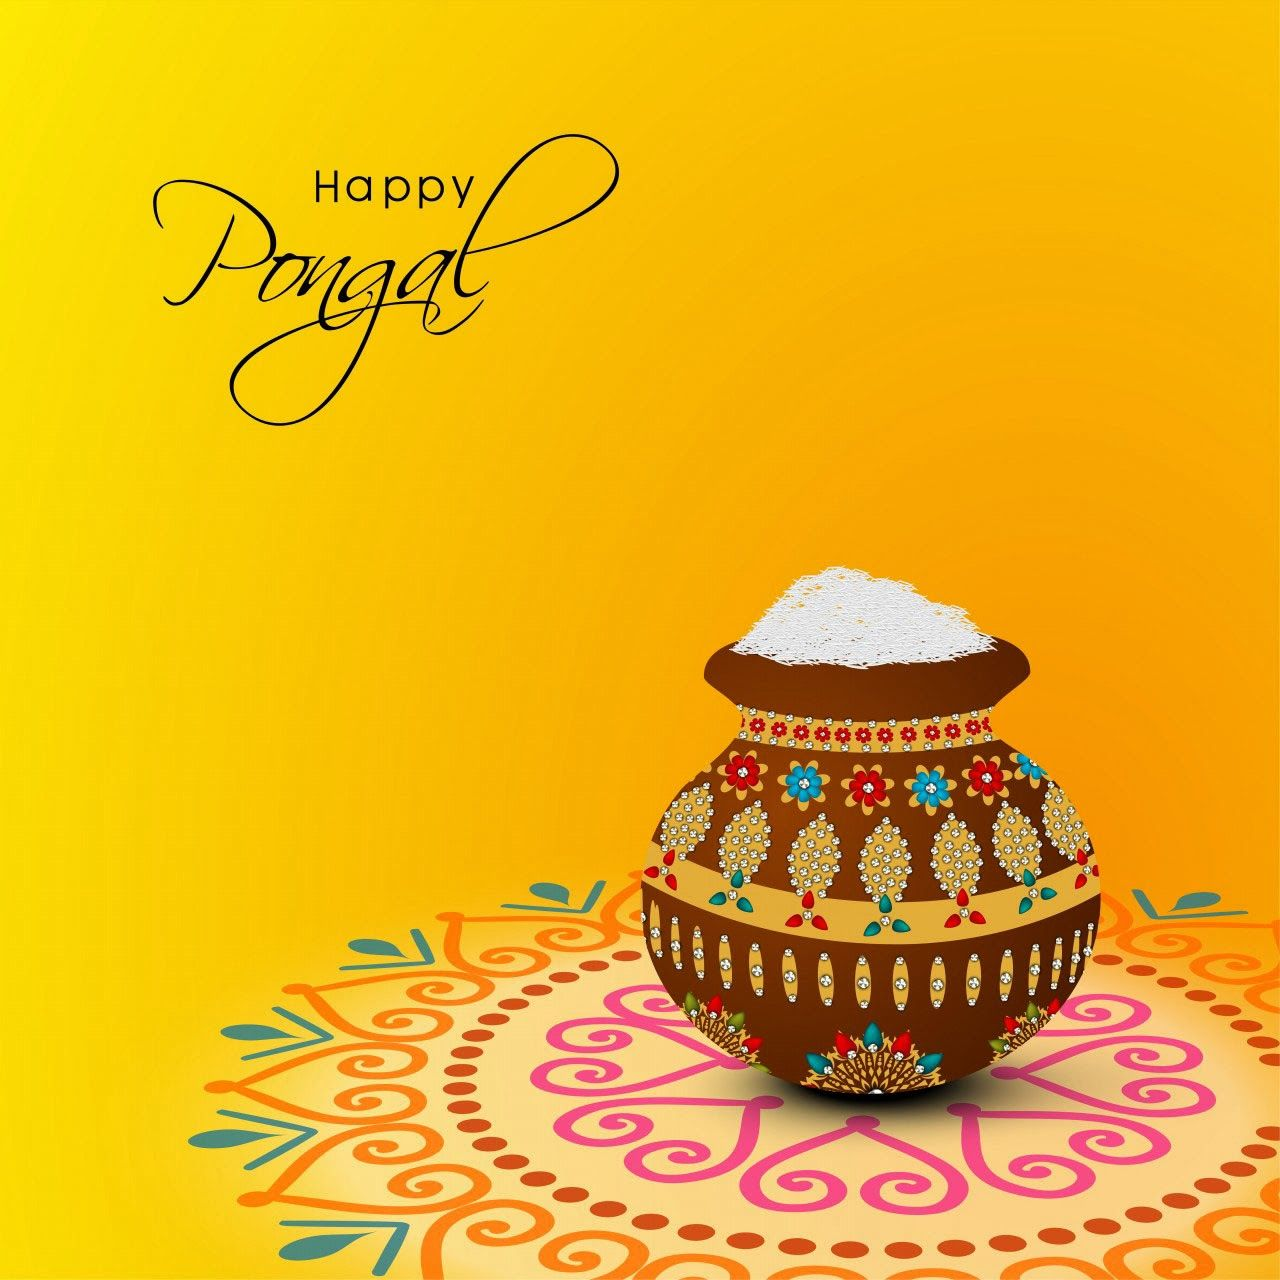 Happy pongal greetings sms messages in hindi and tamil indian happy pongal greetings sms messages in hindi and tamil m4hsunfo